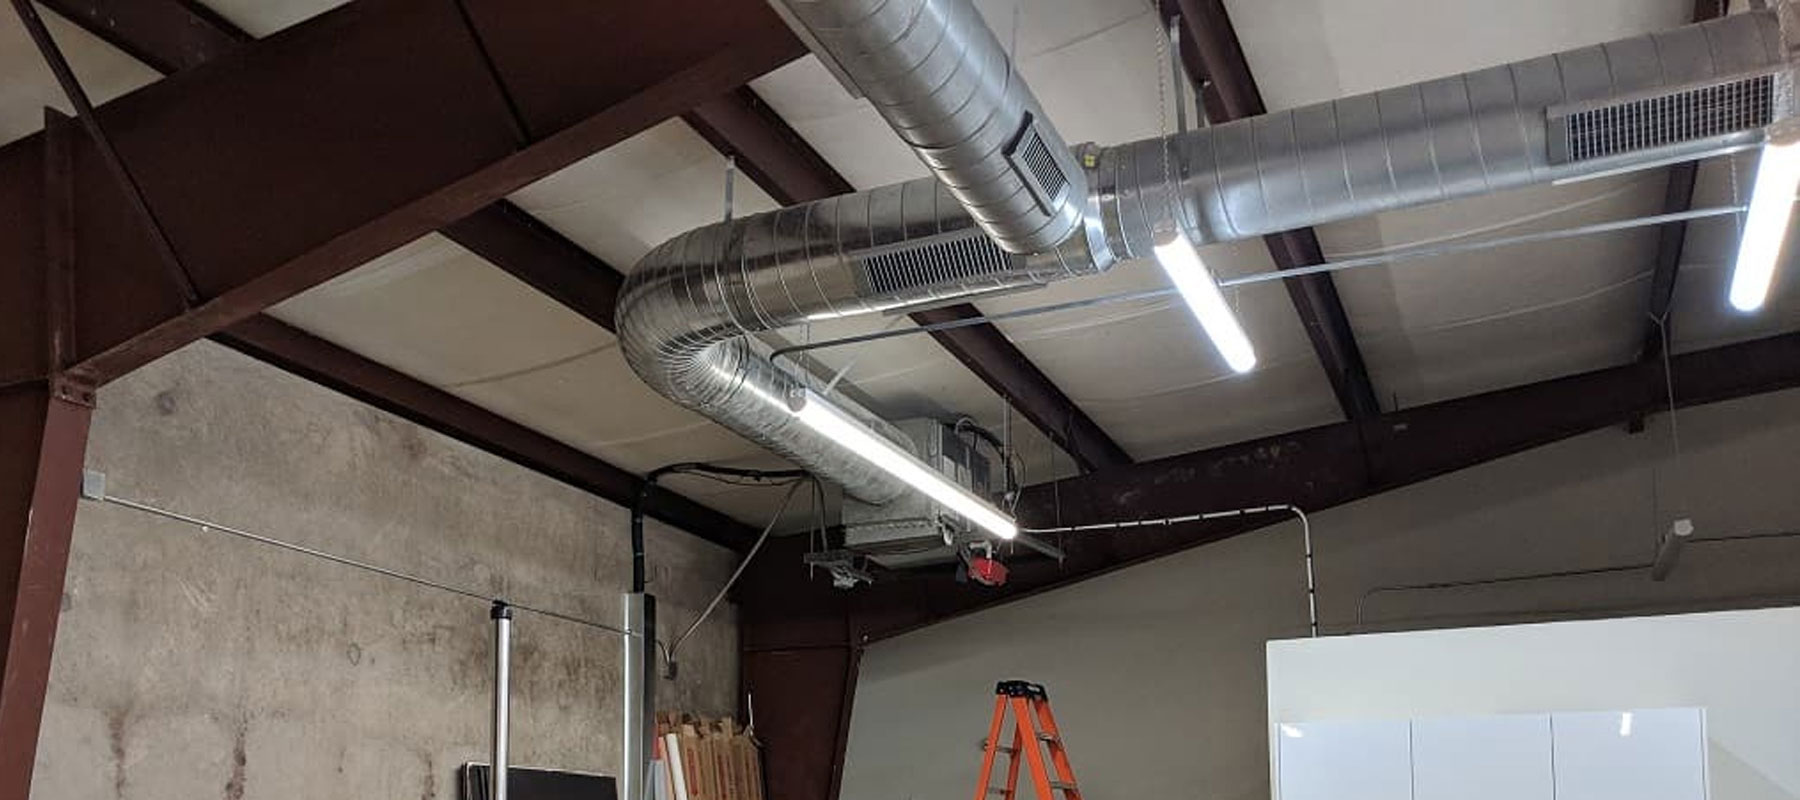 Best Air Duct Cleaning Company Simi Valley   Mr Duct Cleaner